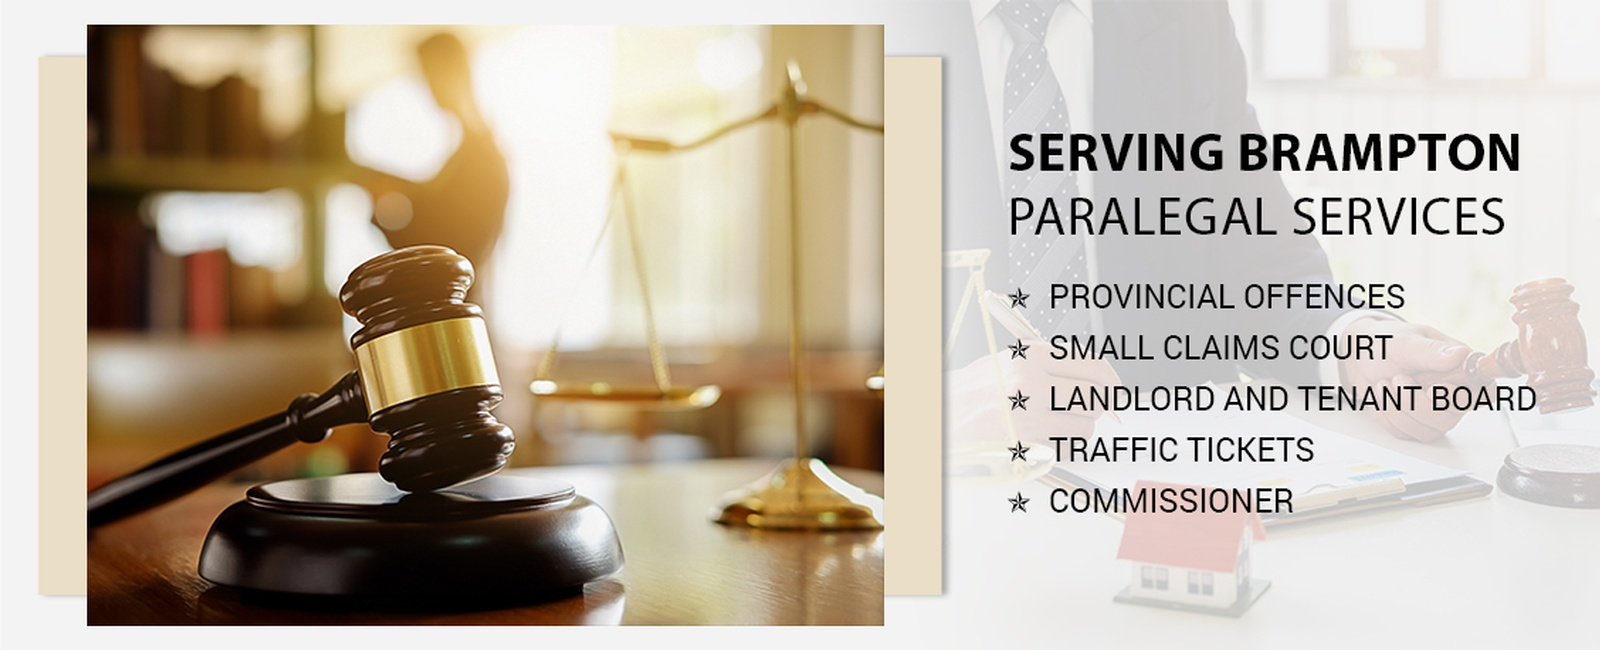 Paralegal services in Brampton